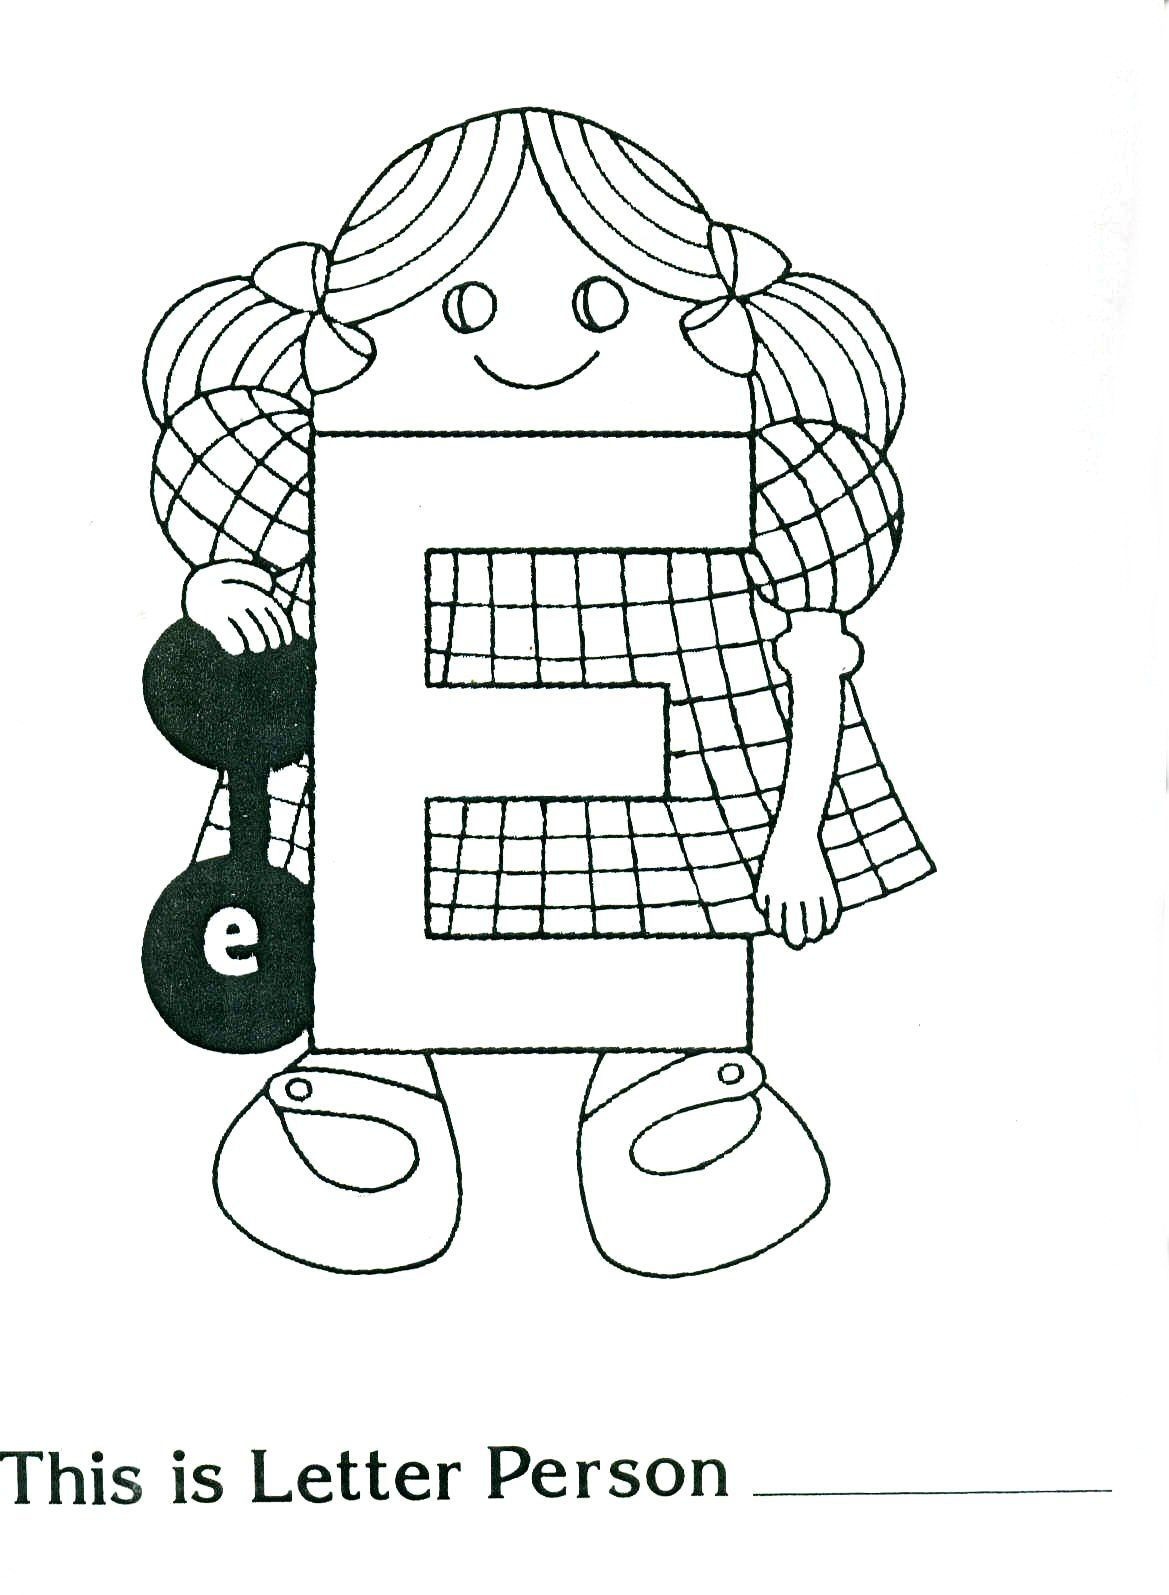 Brilliant Beginnings Preschool Letter Person E